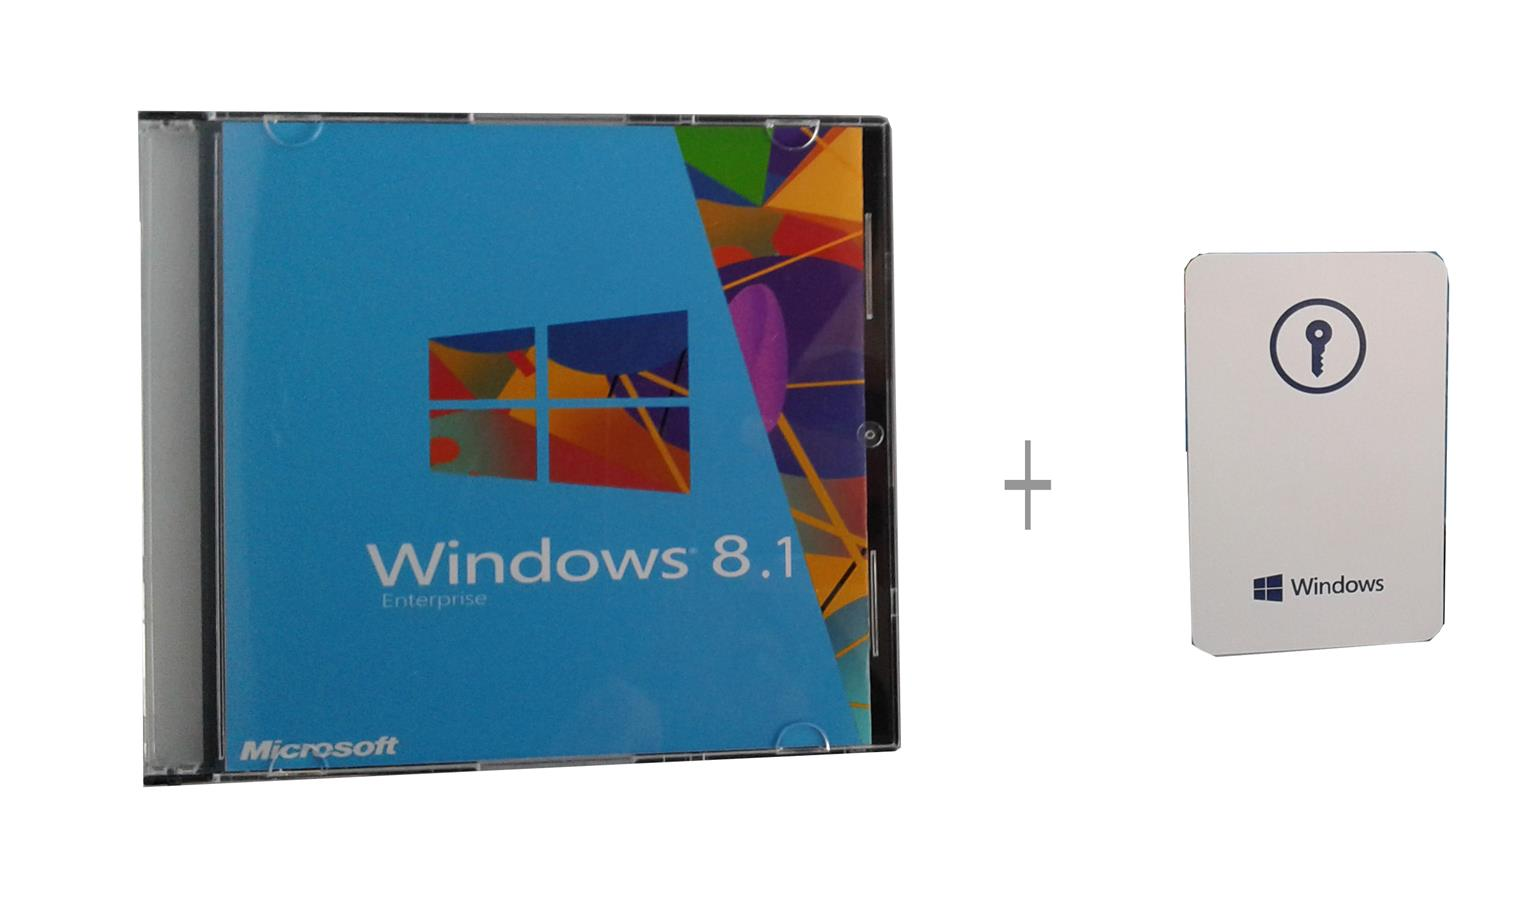 Window 8.1 Enterprise Product Key + Key Card + Installation CD